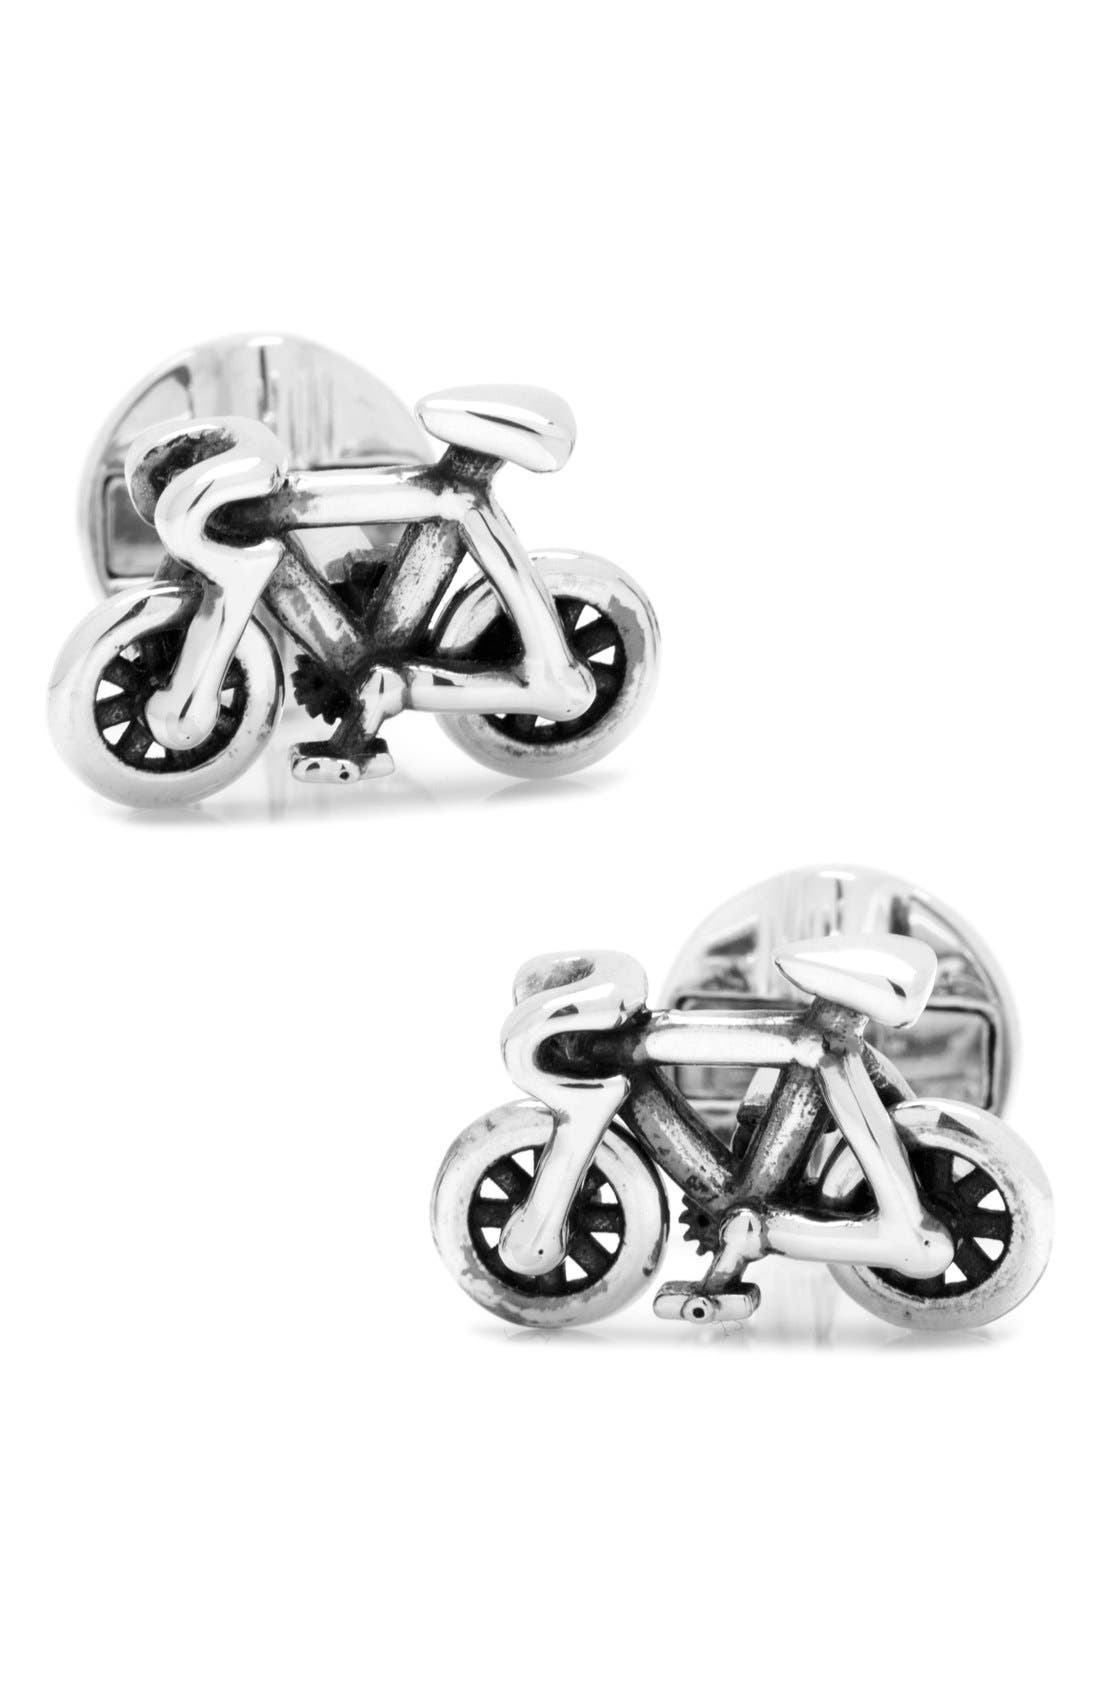 Main Image - Ox and Bull Trading Co. 'Bicycle' Cuff Links